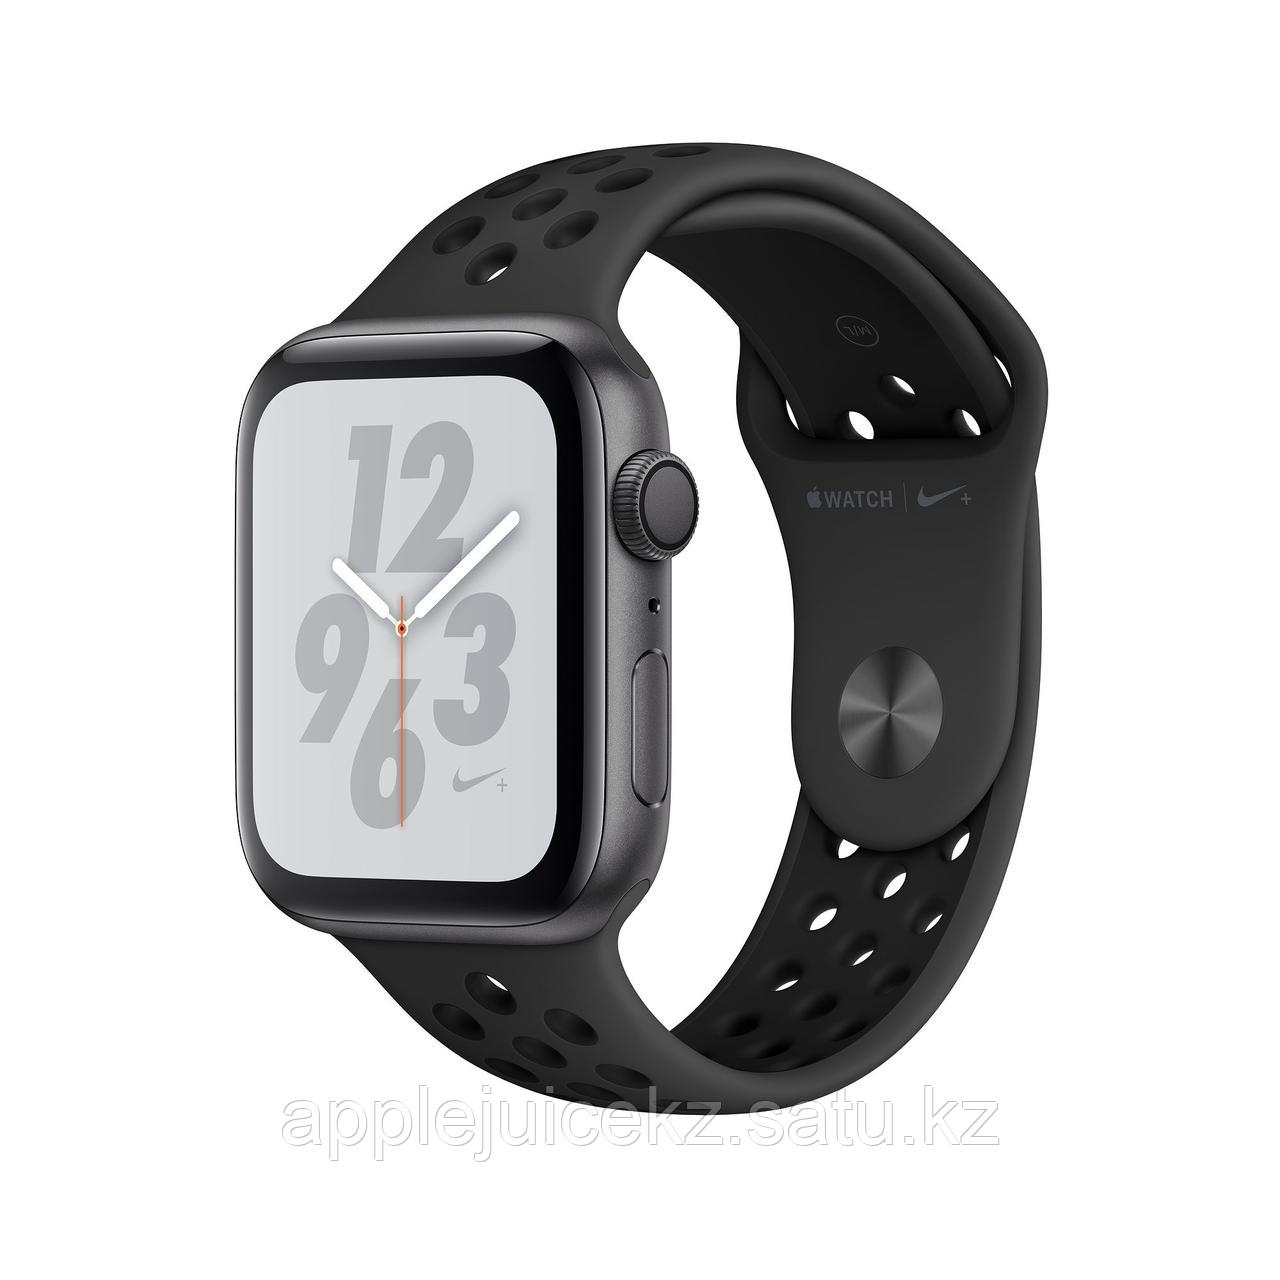 Apple Watch Series 4 40mm Nike+ Space Gray Aluminum Case with Anthracite/Black Nike Sport Band